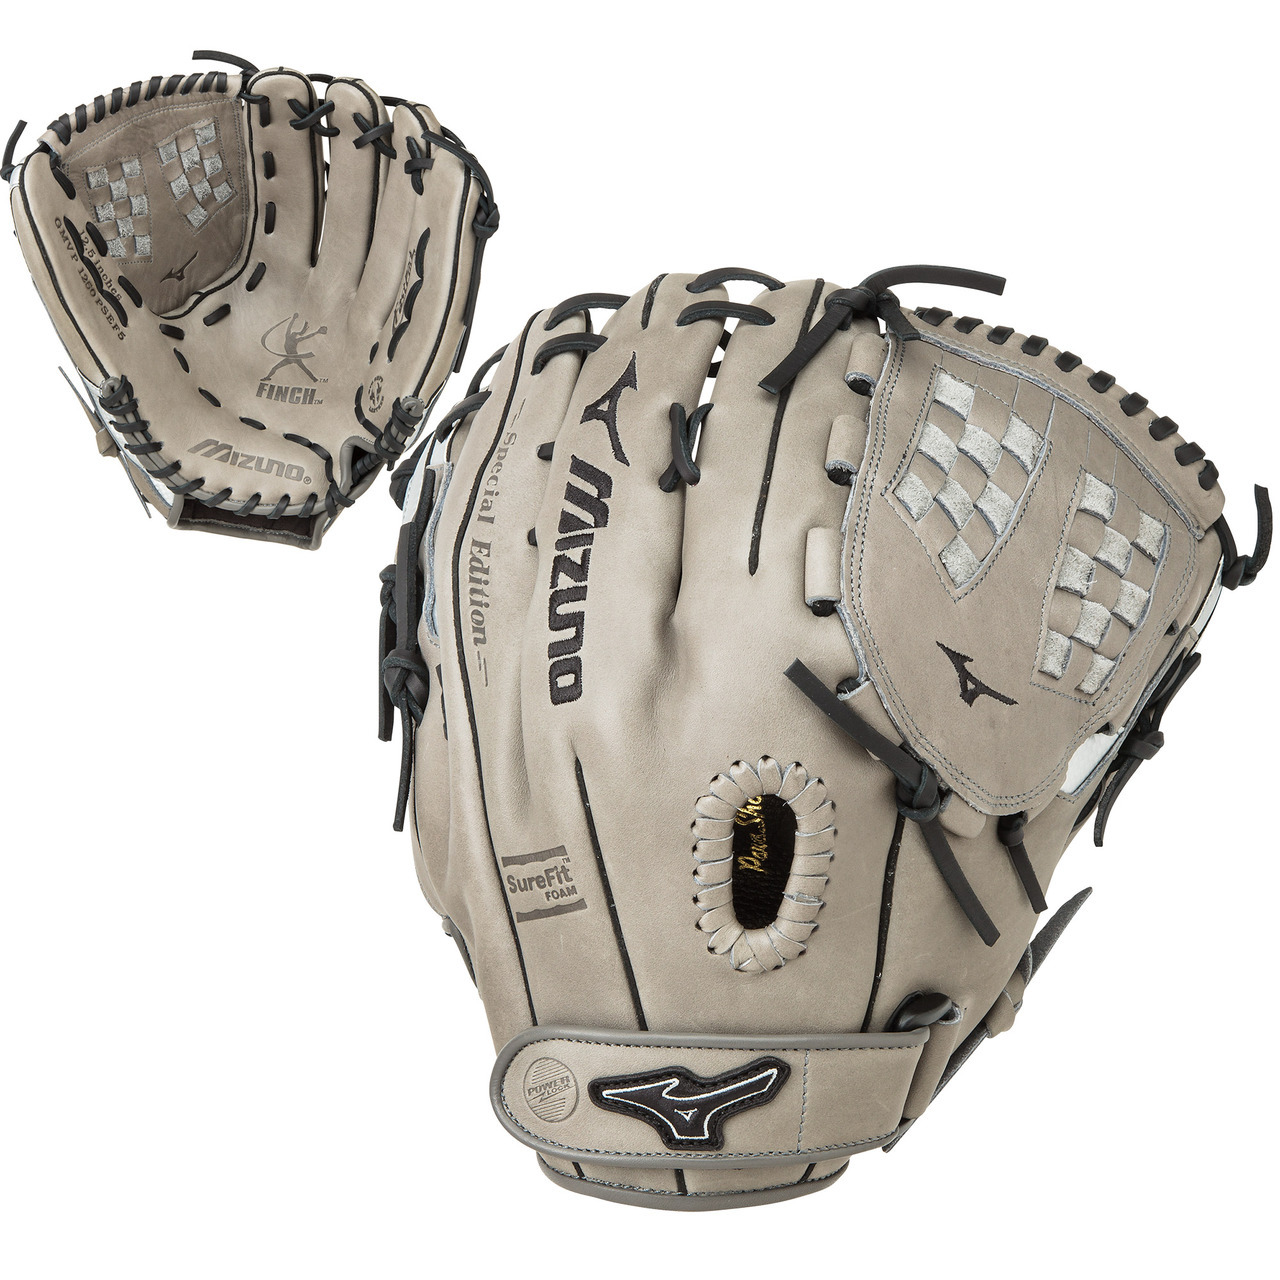 mizuno-mvp-prime-se-12-5-inch-gmvp1250psef5-grey-black-fastpitch-softball-glove-right-hand-throw GMVP1250PSEF5-GYBK-RightHandThrow Mizuno 889961069987        The all new MVP Prime SE fastpitch softball series gloves